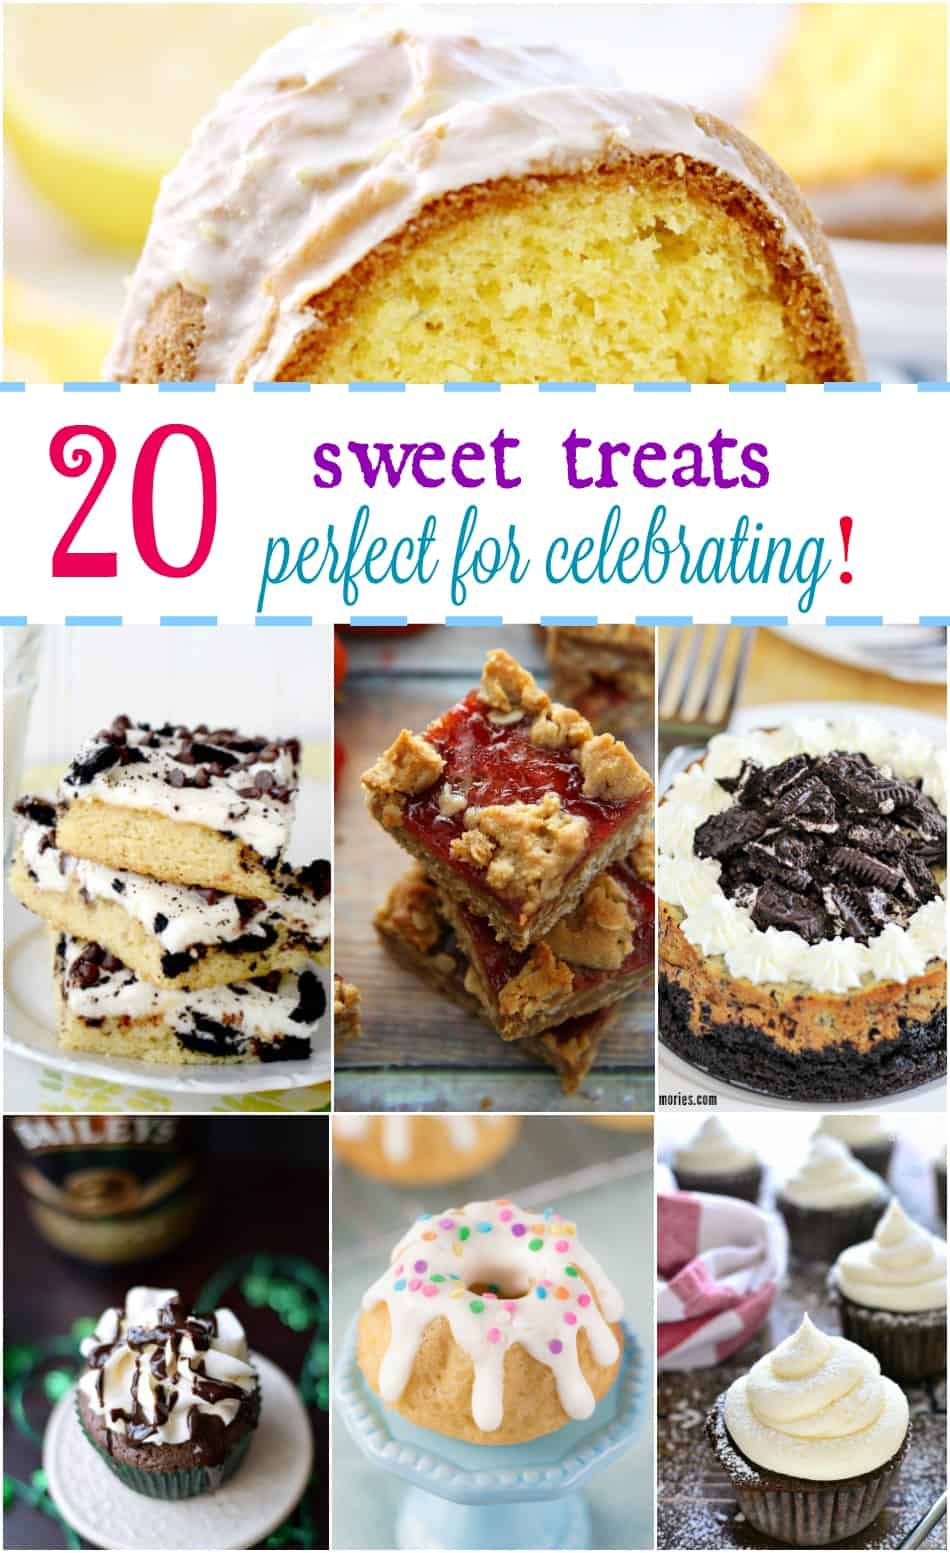 20 Sweet Treats Perfect for Celebrating! cookingwithcurls.com